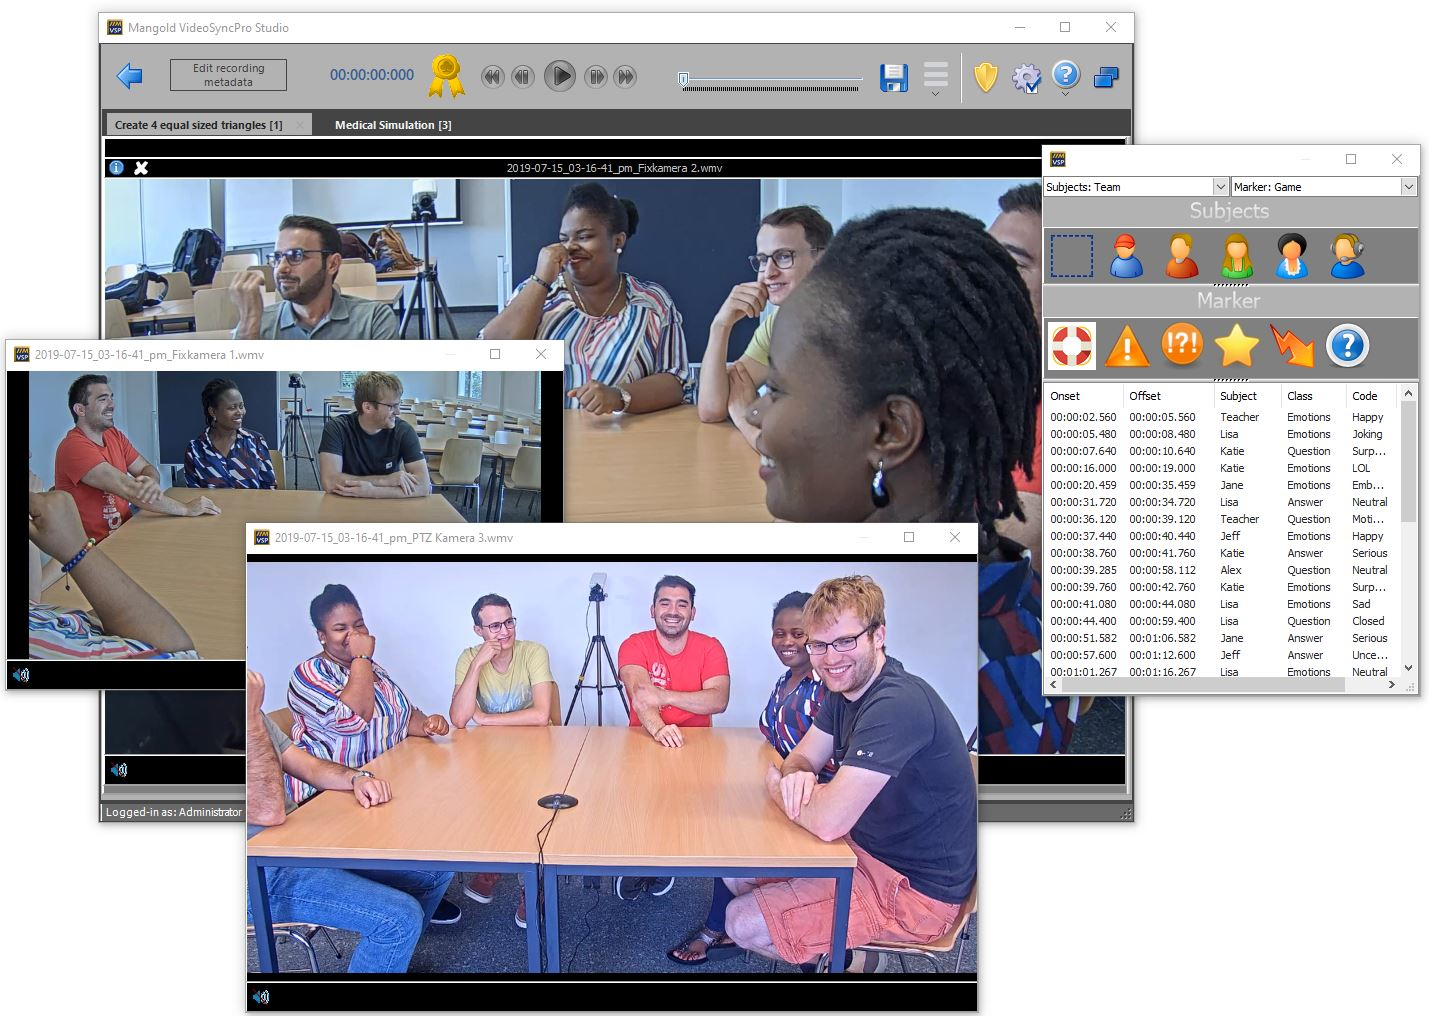 Mangold VideoSyncPro software in classroom observation